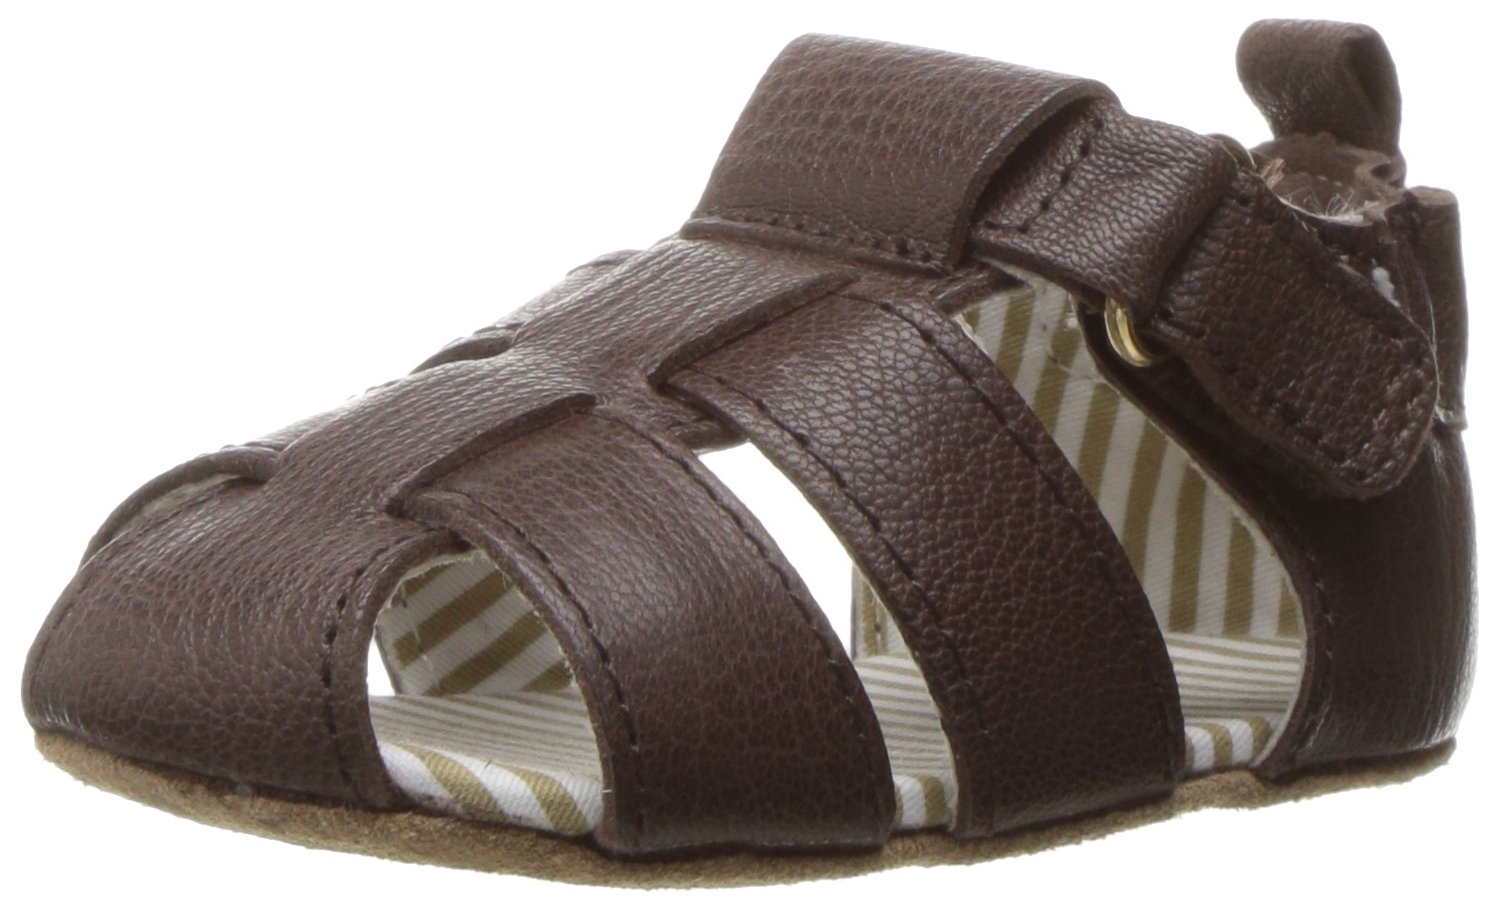 Robeez Boys' Samuel Sandal - First Kicks, Espresso, 18-24 Months M US Infant by Robeez